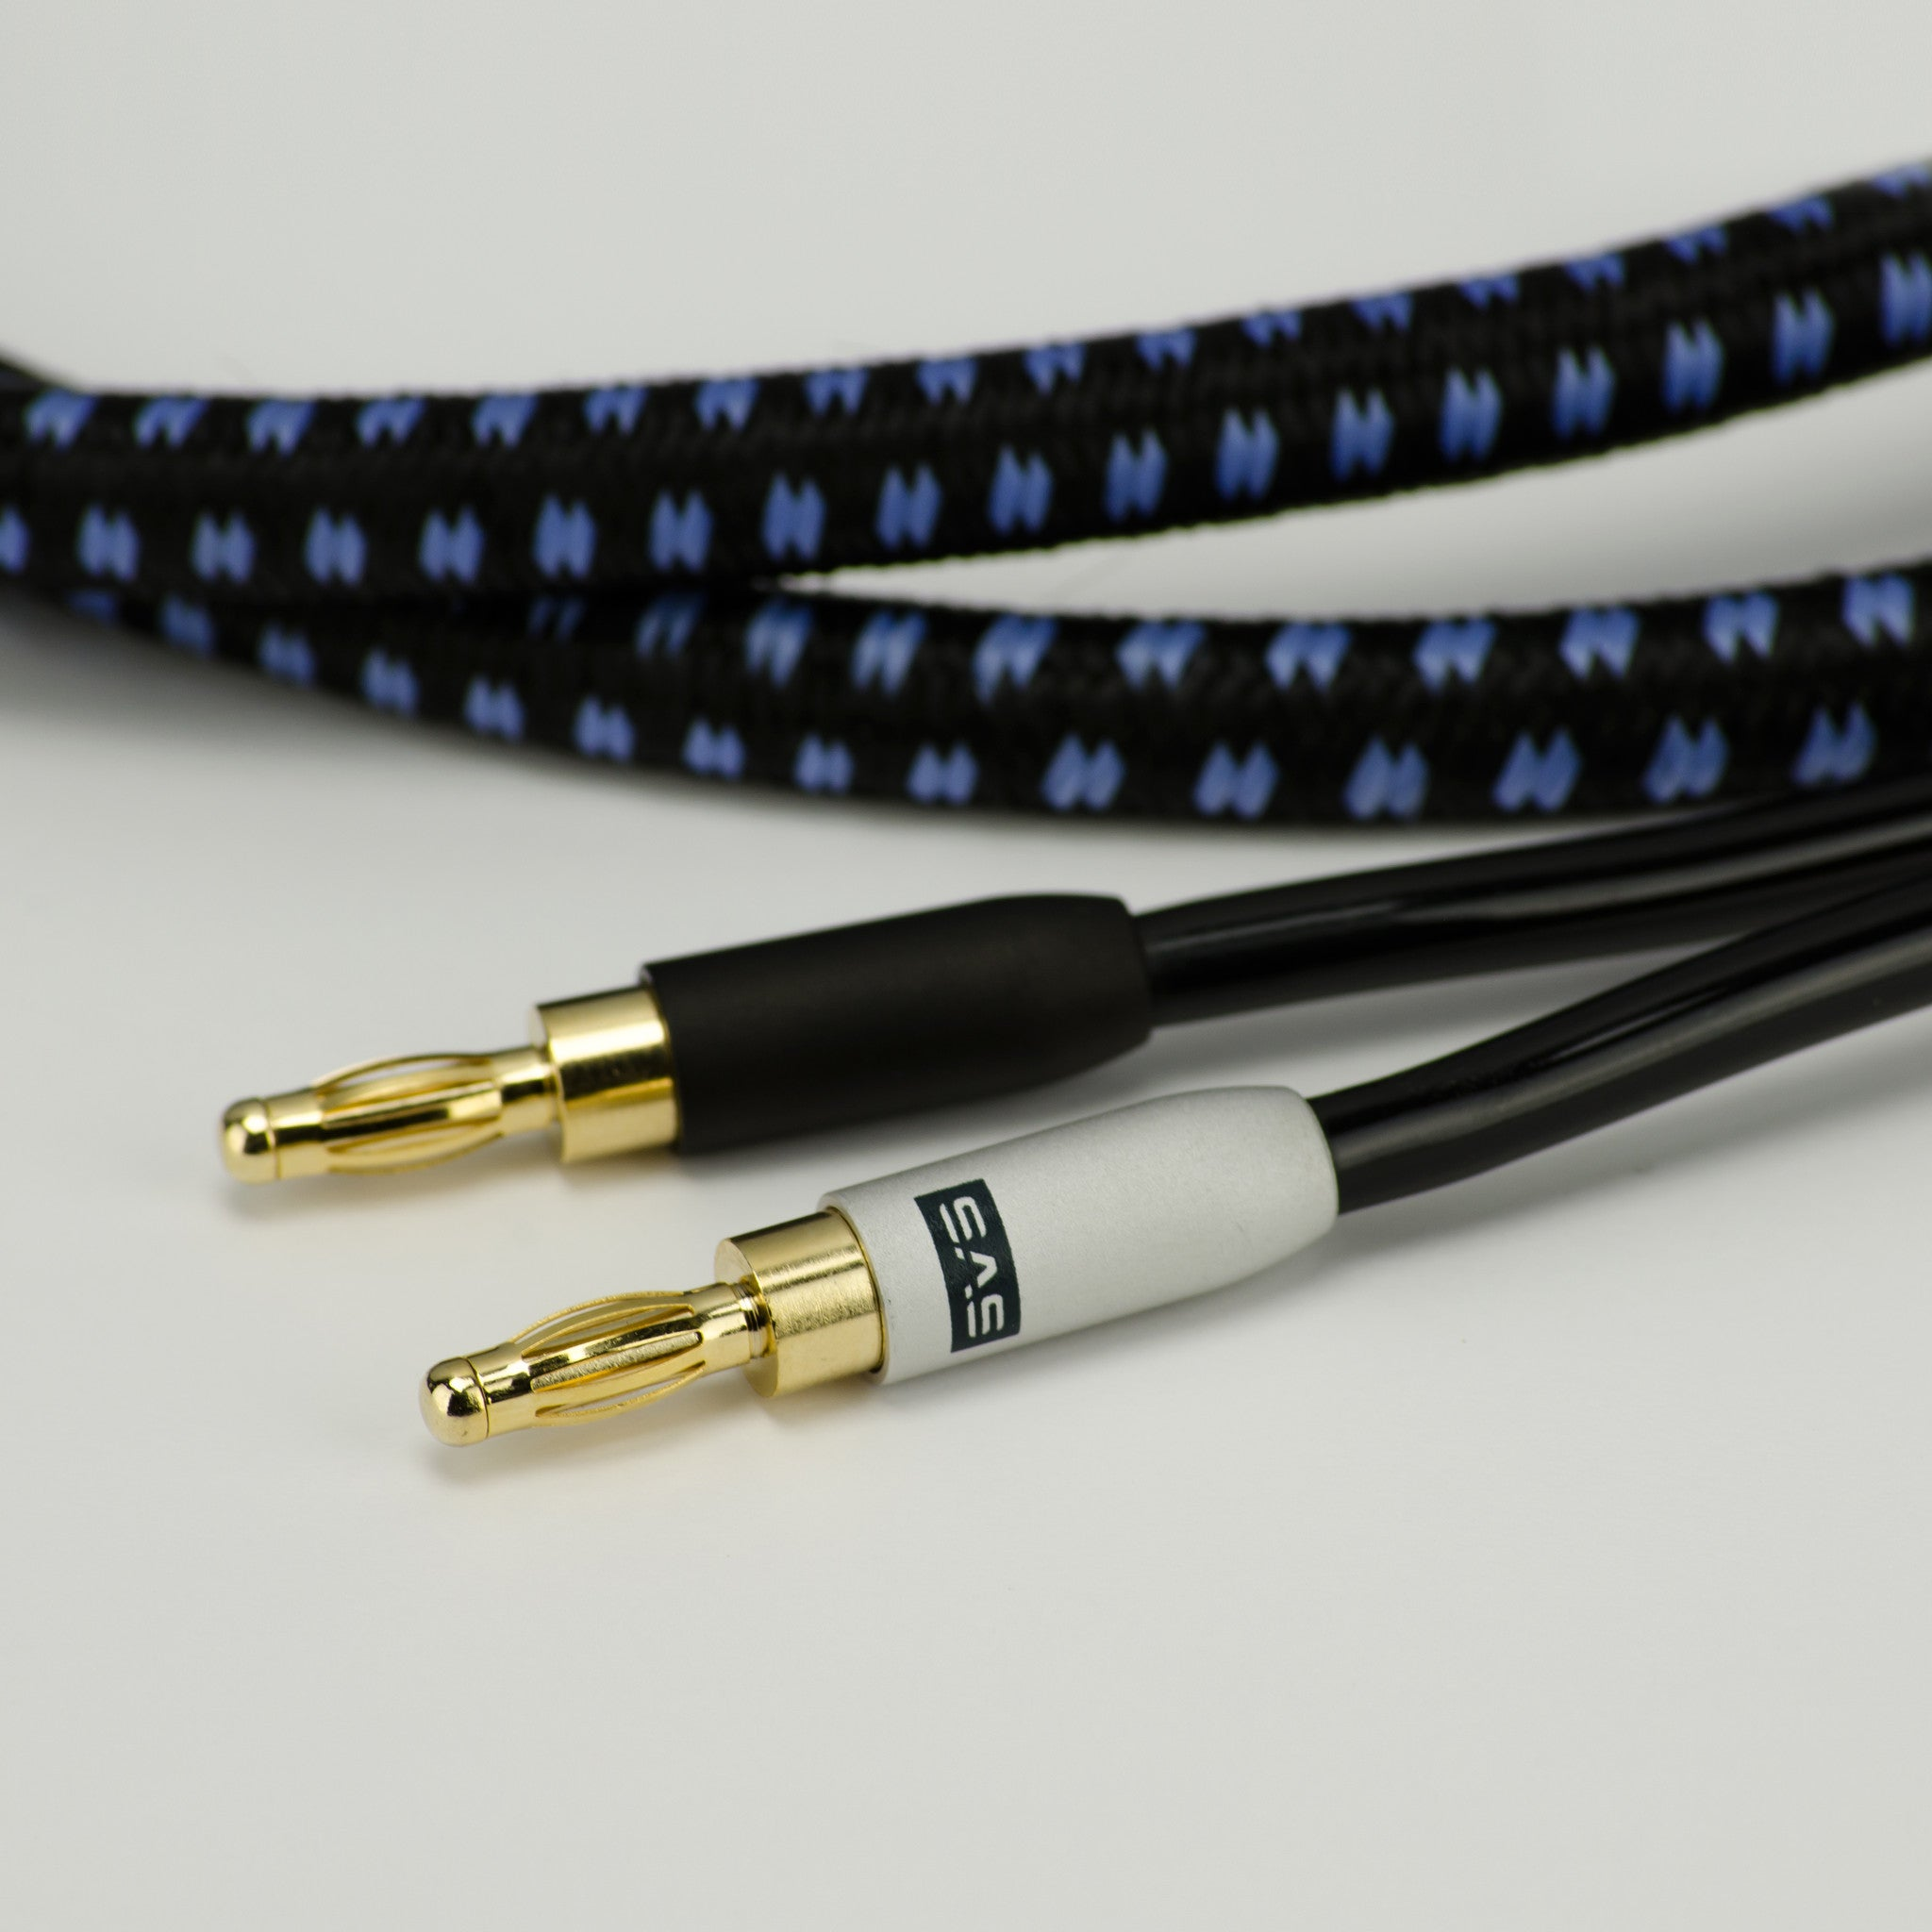 Premium Banana Plug To Rca Phono Speaker Wire Adapter Cables ...